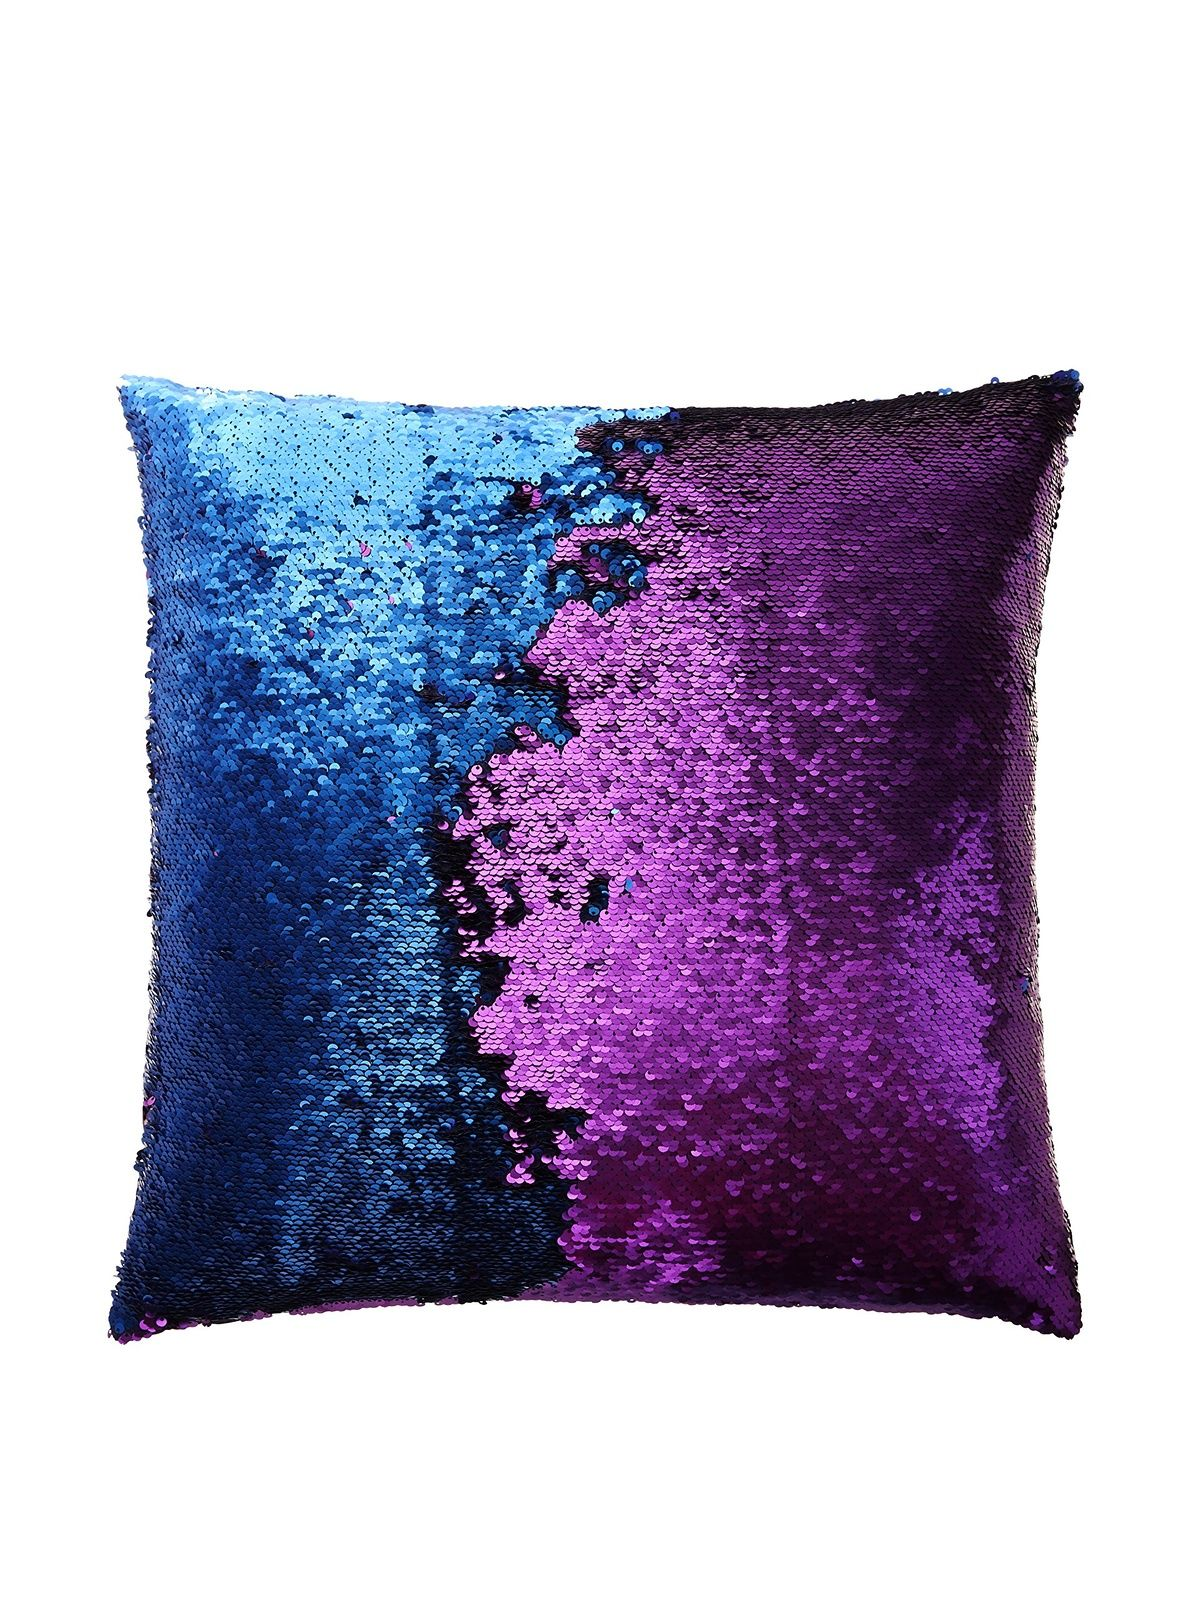 Tessuti d arredo fra lusso e originalit? Interior Design Sequin pillow, Mermaid pillow and ...